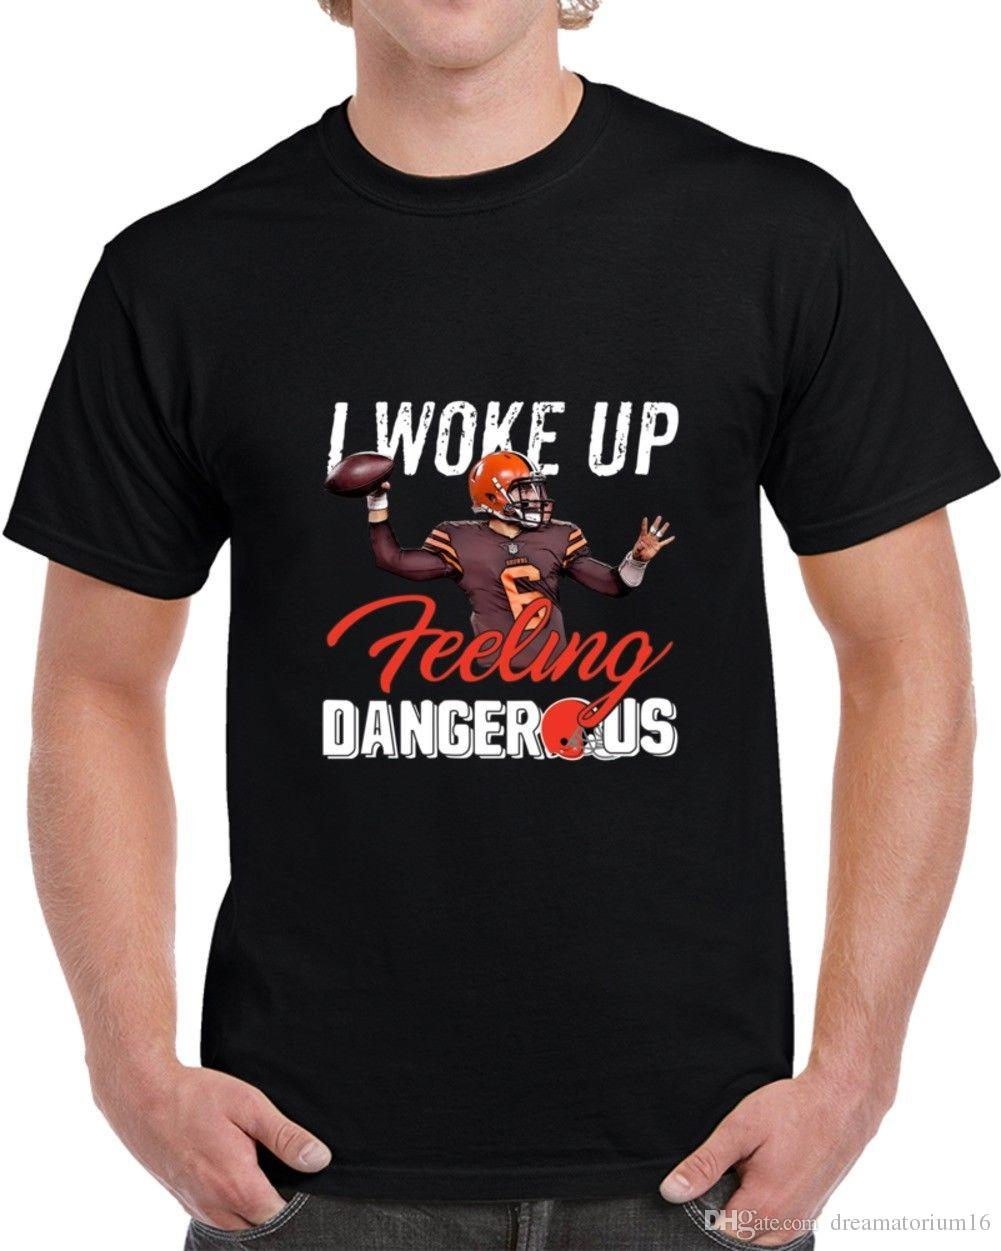 764c20872 Baker Mayfield I Woke Up Feeling Top Teeous Black T Shirt S 2xl Amusing T  Shirts With T Shirt From Dreamatorium16